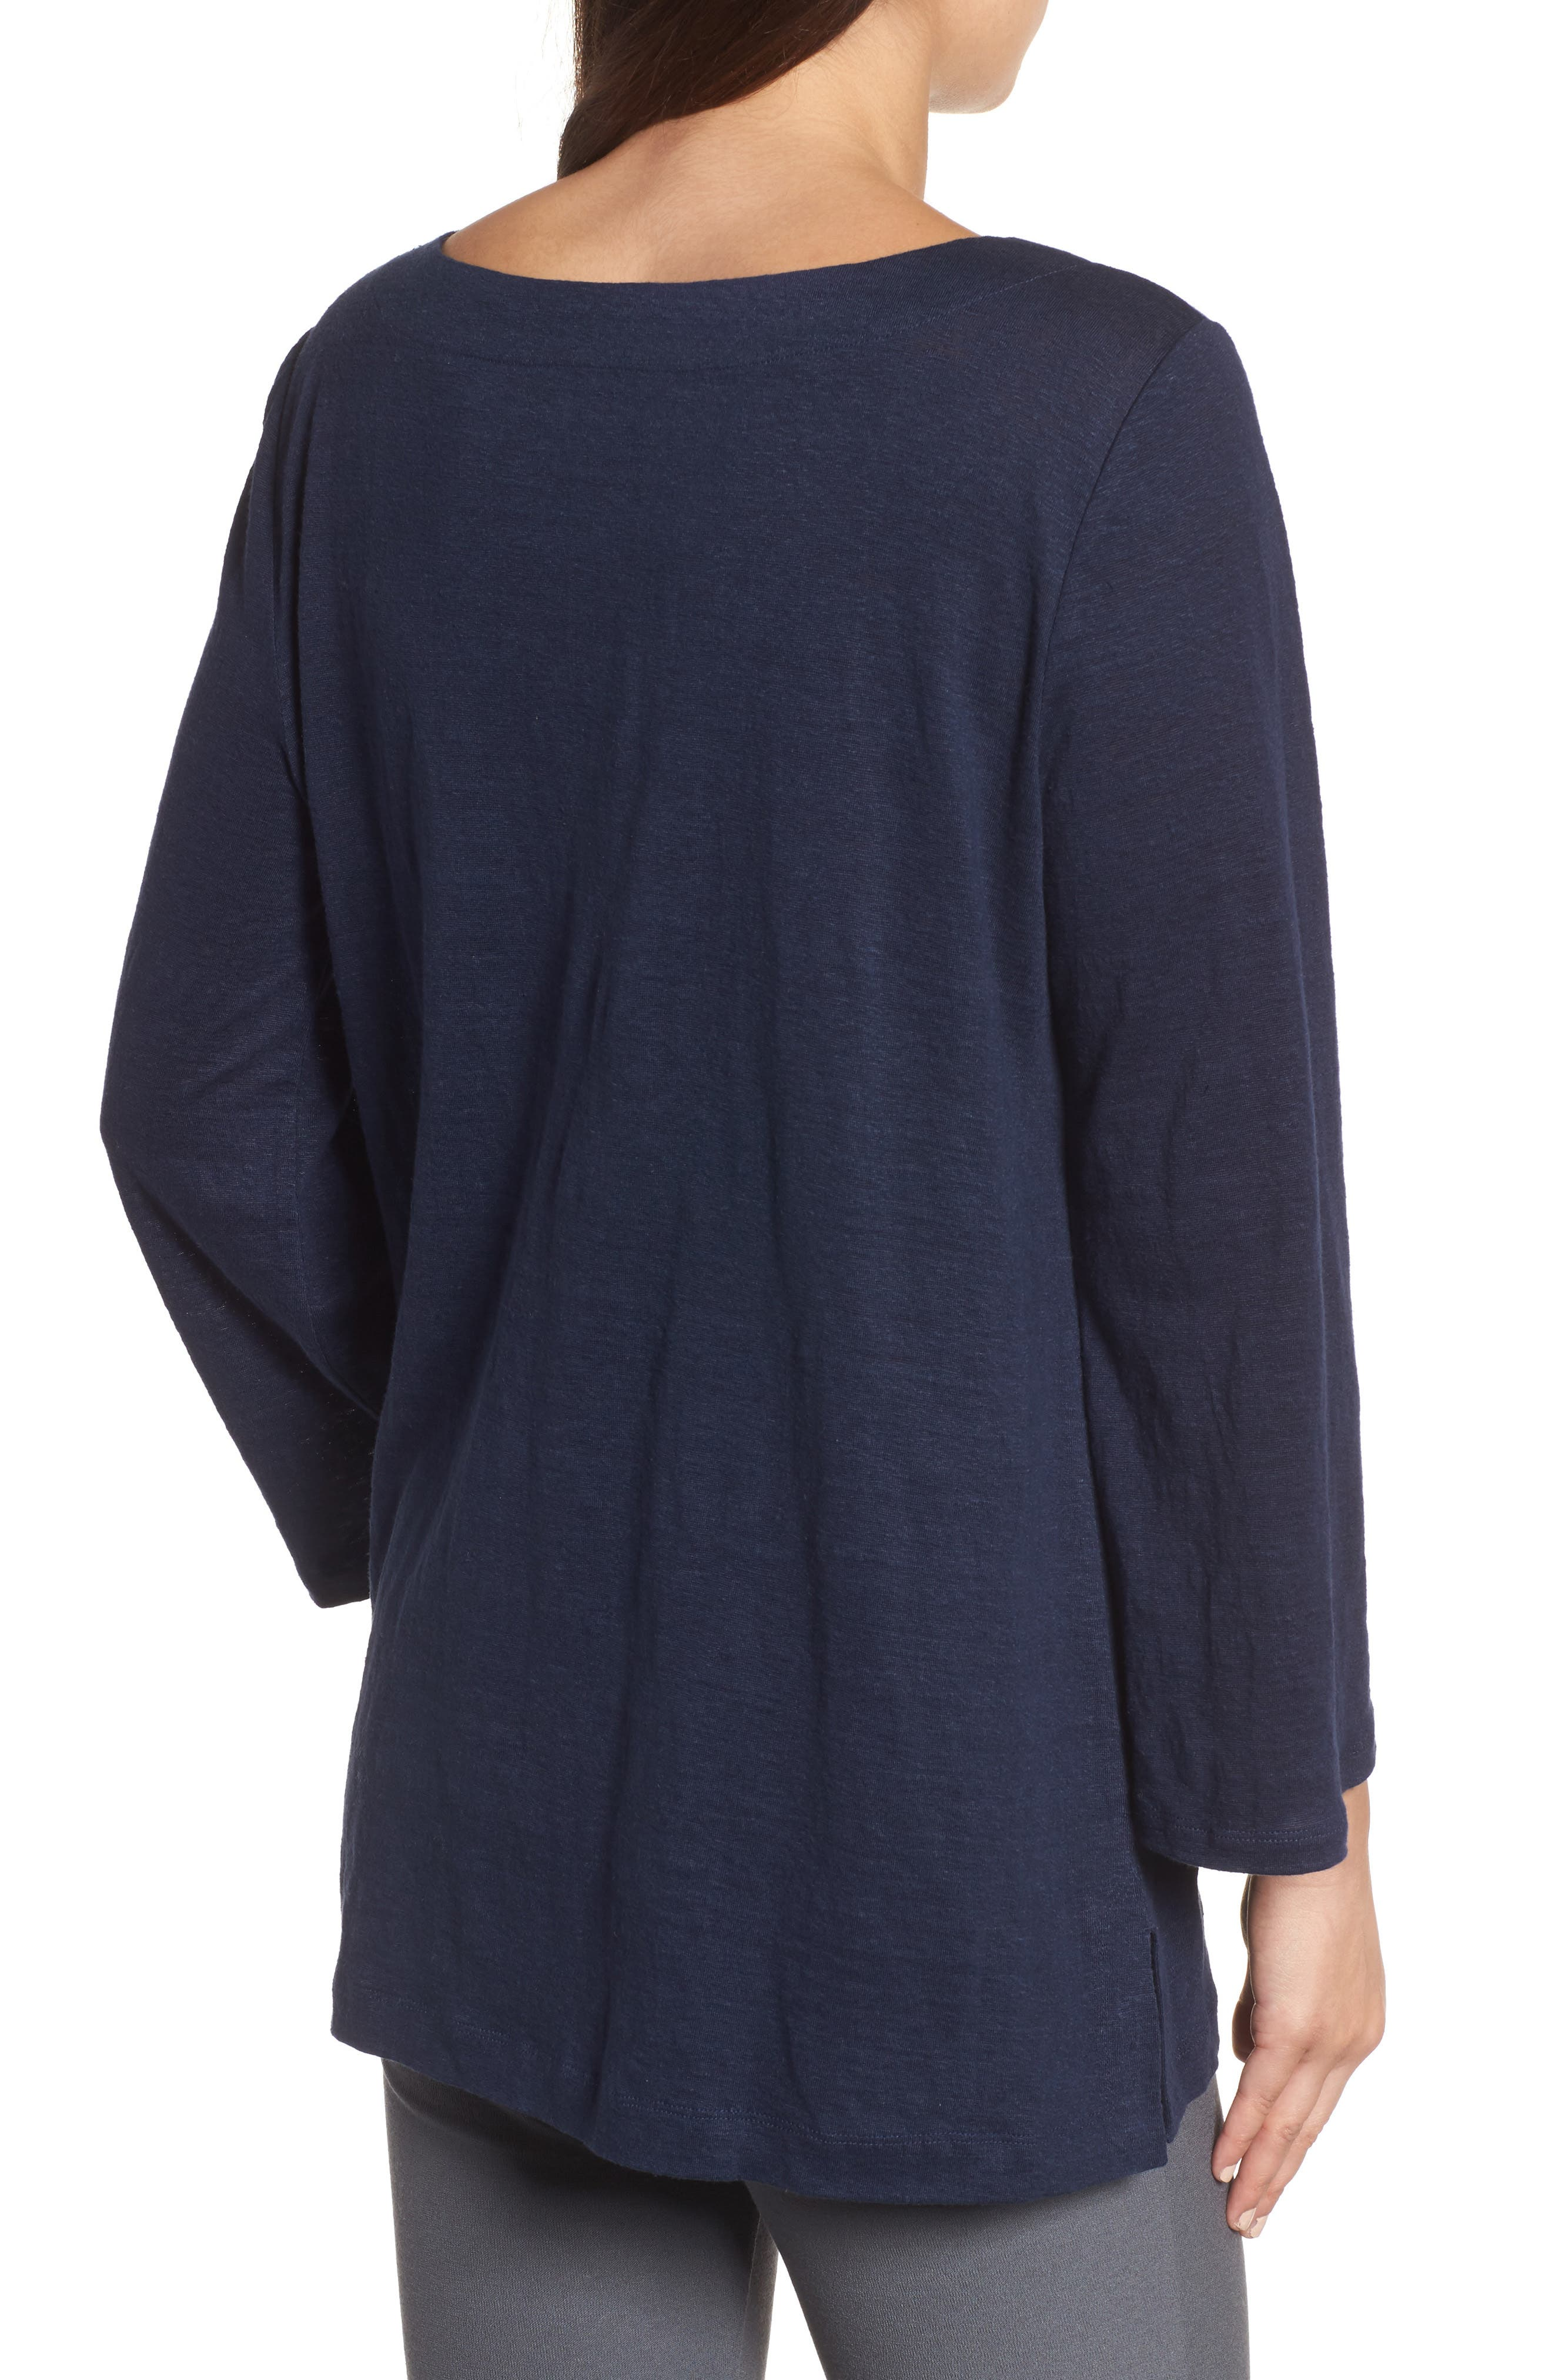 Organic Linen Bateau Neck Top,                             Alternate thumbnail 2, color,                             Midnight